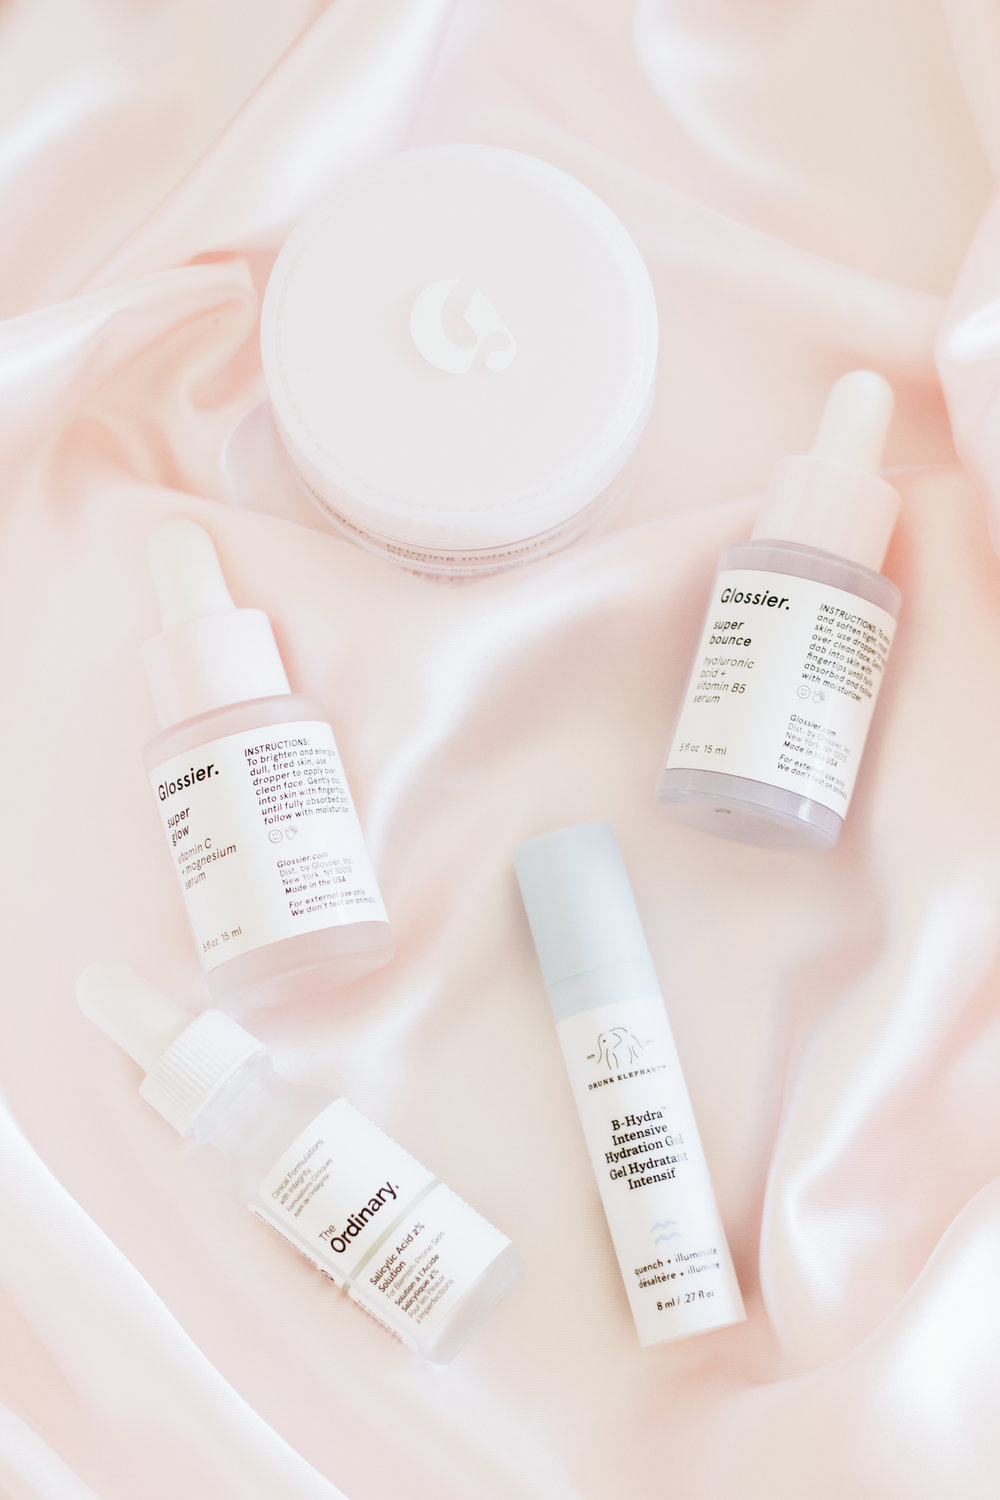 The Ordinary Salicylic Acid 2% Solution - The second gap in my skincare routine that I wanted to fill was spot treatment, so I decided to take a chance on The Ordinary Salicylic Acid 2% Solution. Used as either a targeted treatment or all over serum, the results from this have been deeply underwhelming and I haven't found it to be anywhere near as effective as other spot treatments I've tried in the past. Unlike my Biologique Recherche Lotion P50 and Glossier Super Pure, this didn't do anything to remedy my skin while I was purging and even on smaller breakouts, it takes a few days before I notice a reduction in my spots. With my previous spot treatments, I could see they had shrunk the very next morning. My skin has become more acne prone since coming off the pill (for that reason, I'll probably go back on it soon) and my breakouts can be quite stubborn too, so I really don't think this is the right product for me. If you're someone who breaks out once in a blue moon and they're not particularly large, this formula may work well for you, but once I've used this up, I'll be looking into other spot treatments for myself. I've got the Niacinamide 10% + Zinc 1% waiting to be used and I'm hoping this will deliver better results because so far, I haven't been that impressed by The Ordinary.